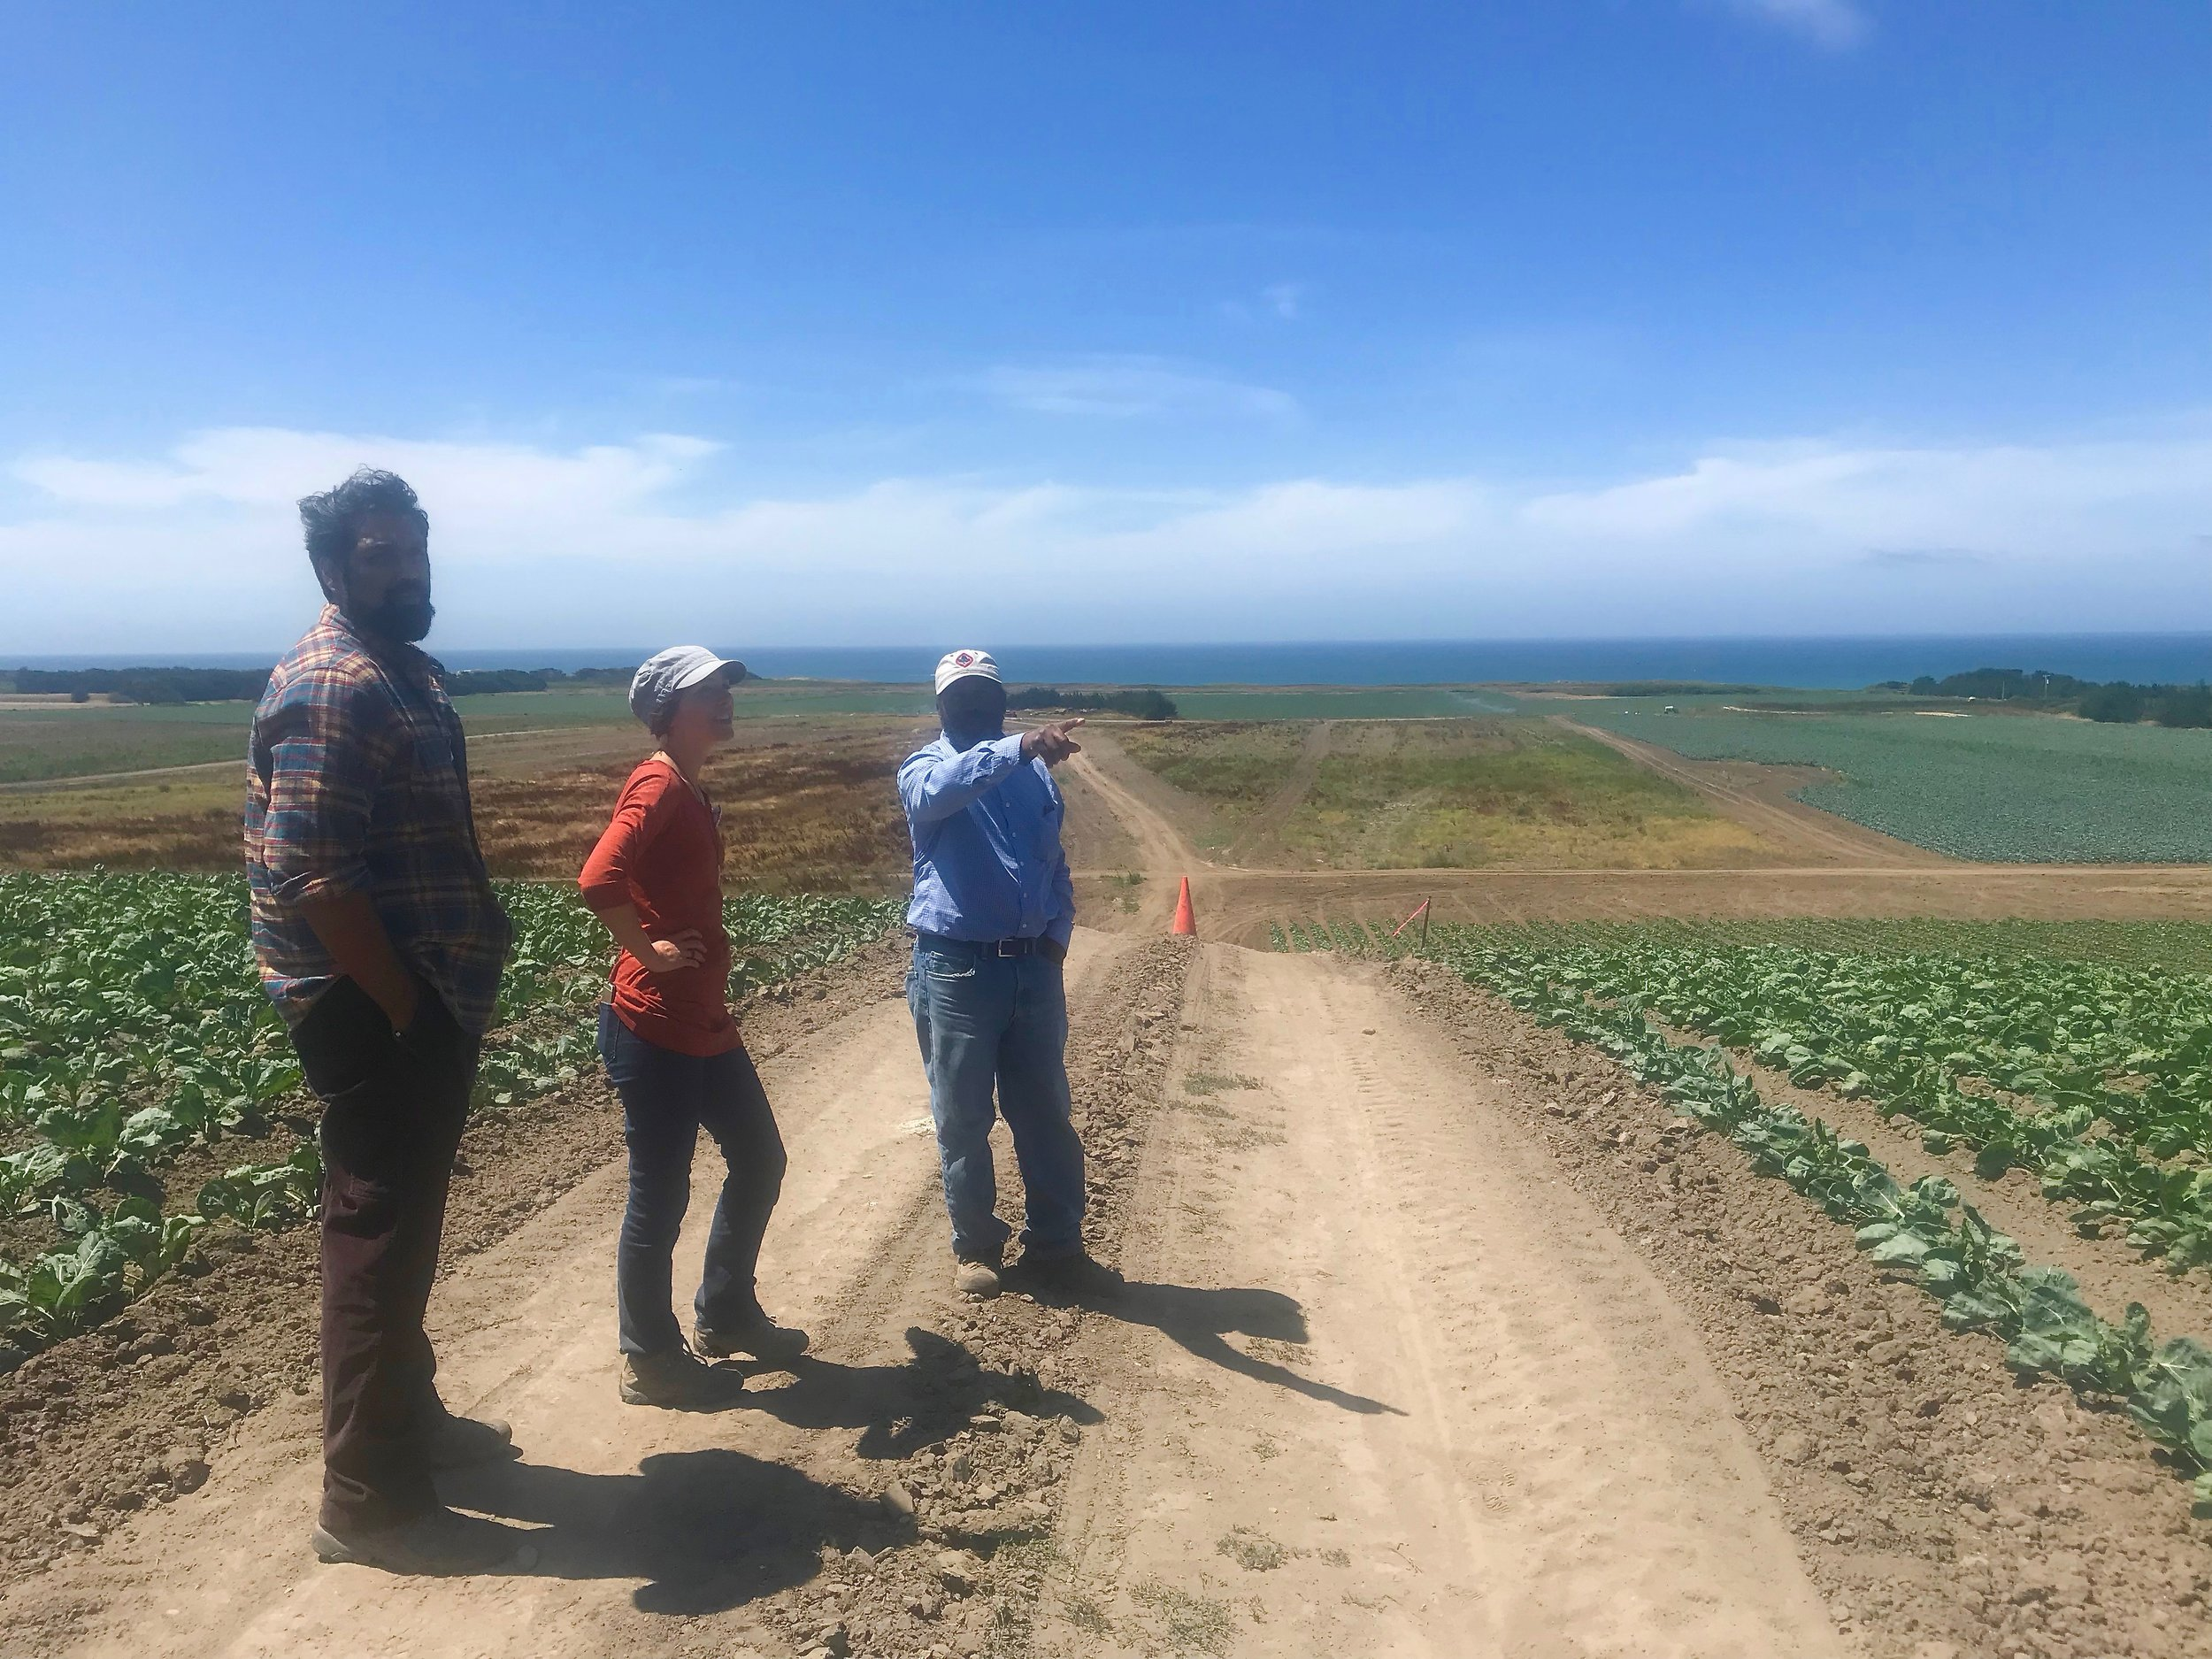 Leonard Diggs (pointing, in blue), Director of Operations at Pie Ranch, is spearheading the efforts to transform Cascade Ranch into a regenerative landscape for next-generation farmers. Here, he discusses this vision with Samir Doshi (left) and Marit Wilkerson (center) who have diverse and impressive backgrounds in conservation, community building, and policy.